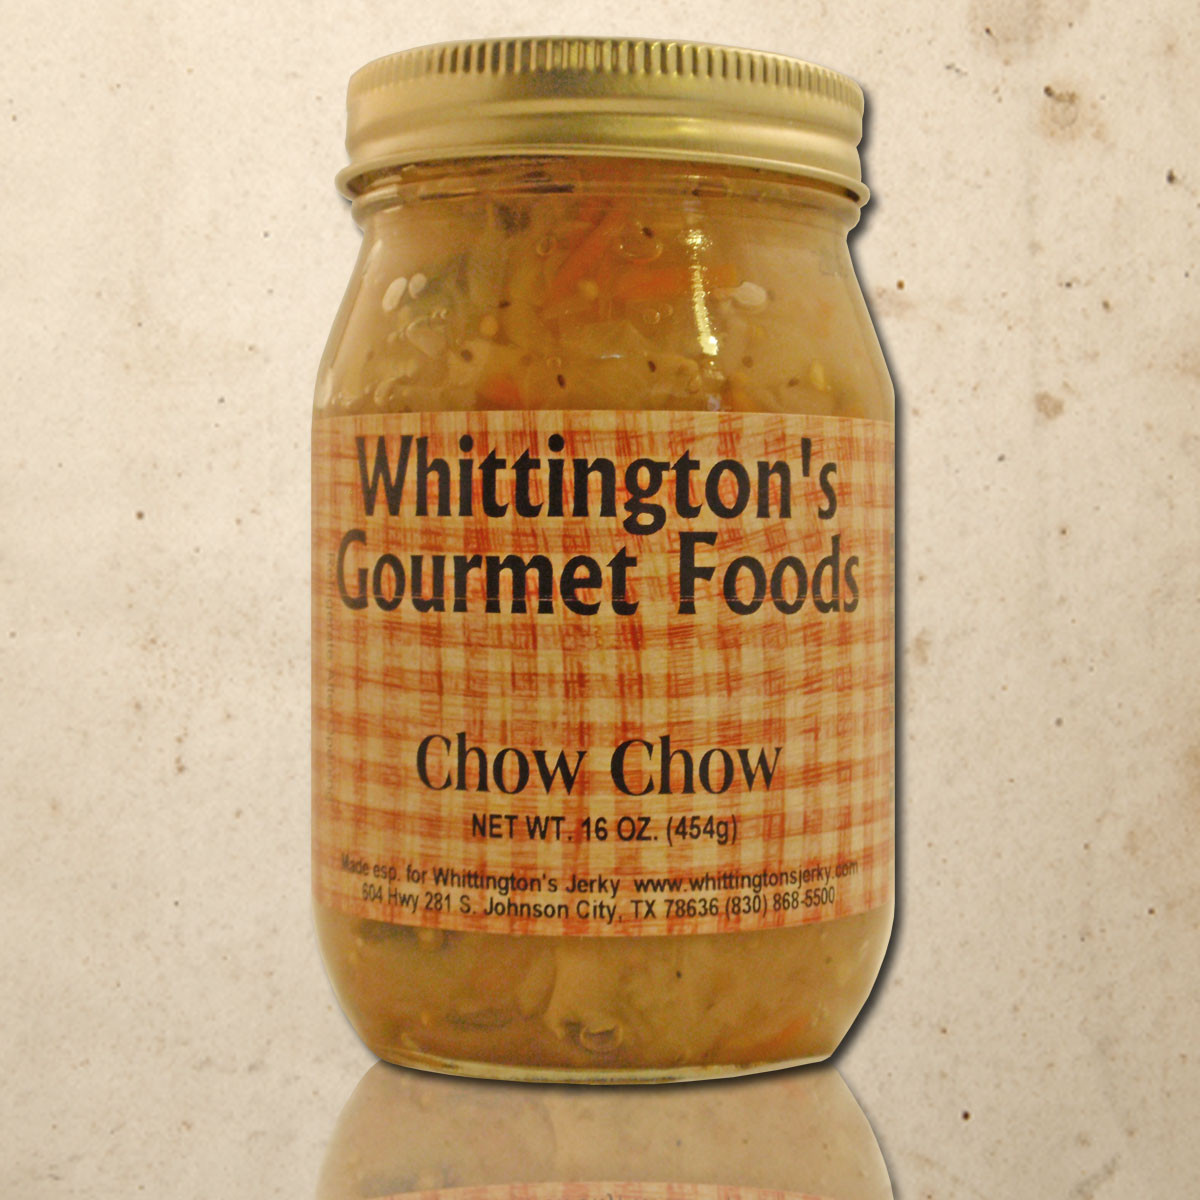 Whittingtons Gourmet Foods Chow Chow